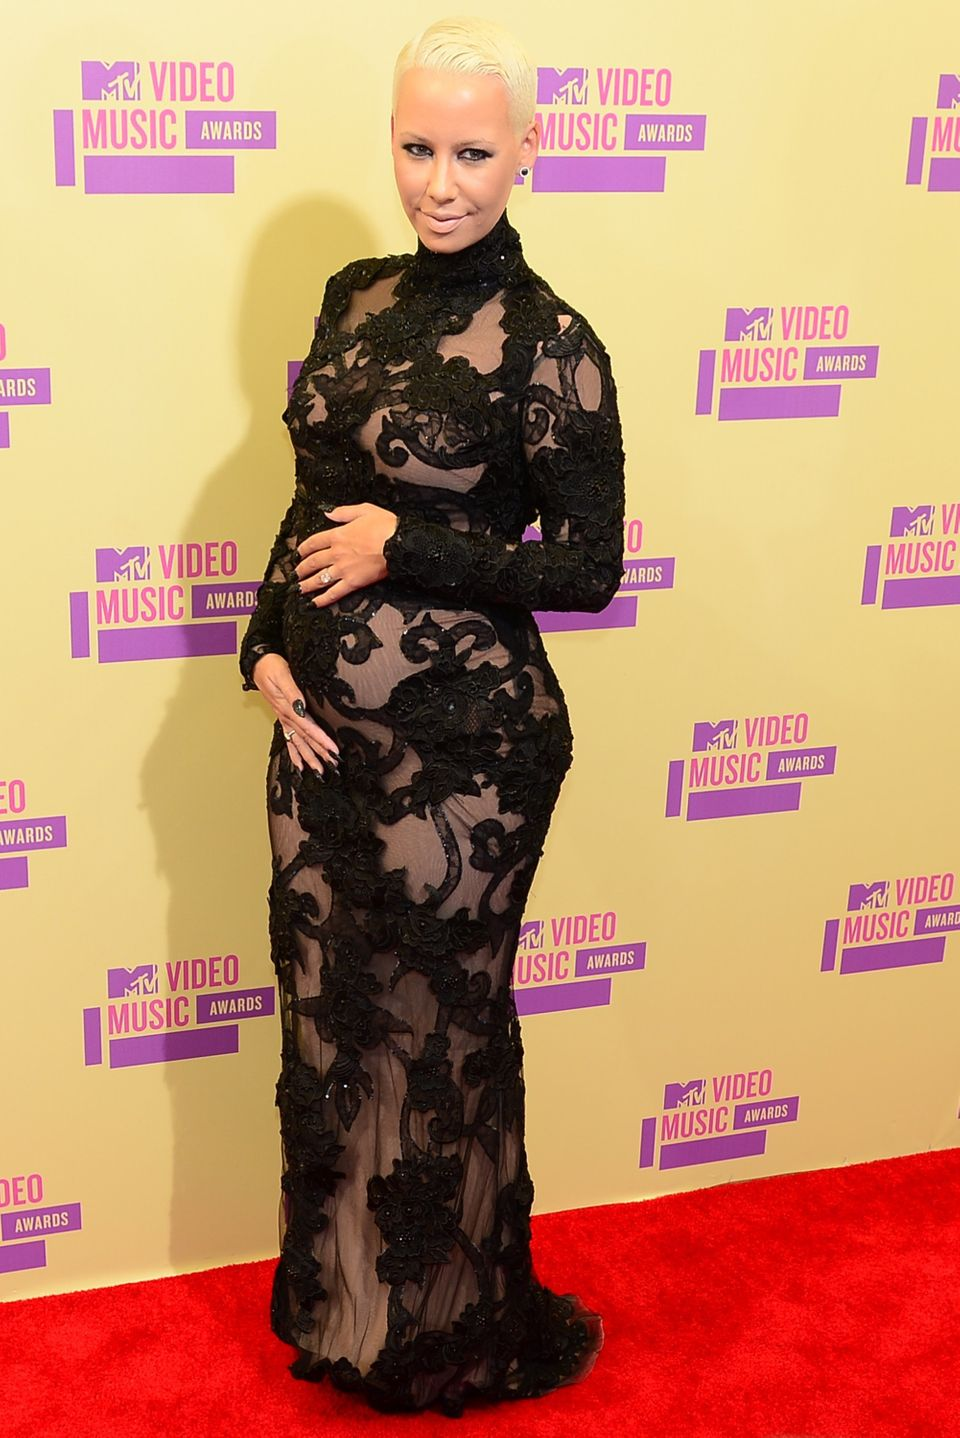 Amber Rose poses on arrival on the red carpet for the MTV Video Music Awards in Los Angeles on September 6, 2012 in Californi